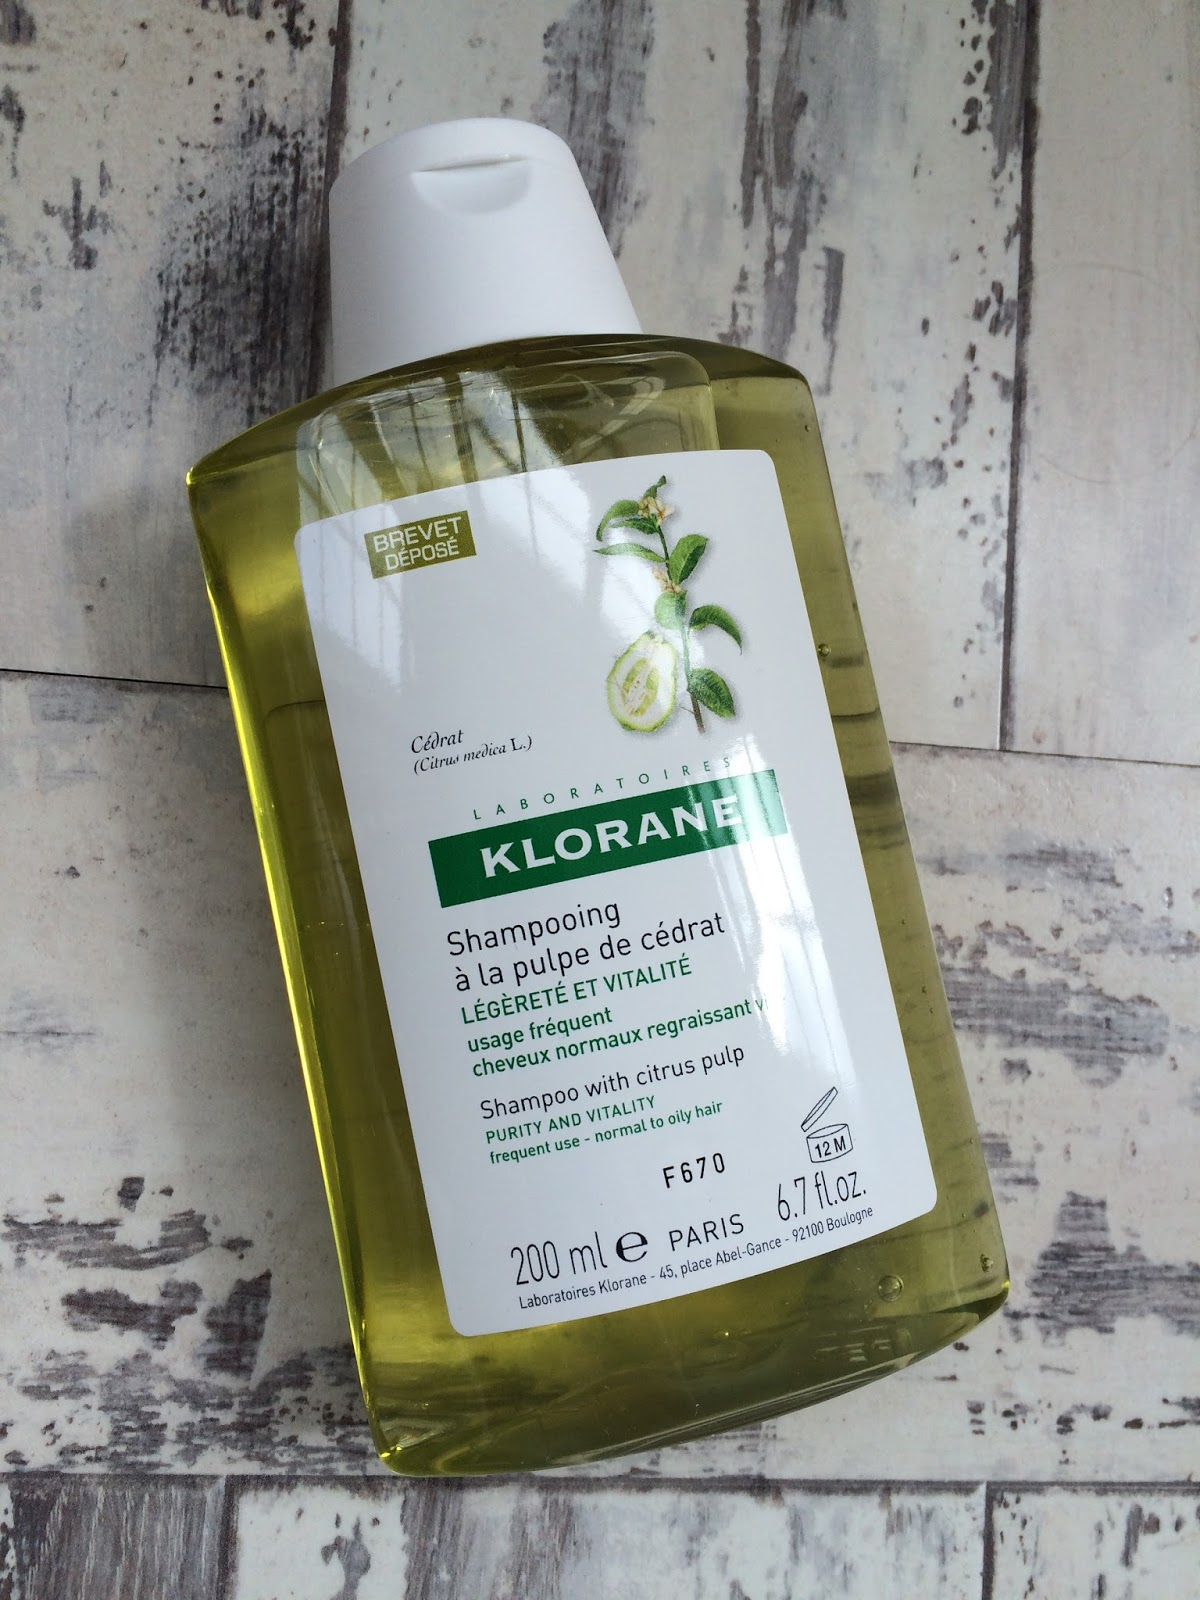 shampoos for thinning and fine hair - Klorane shampoo with citrus pulp